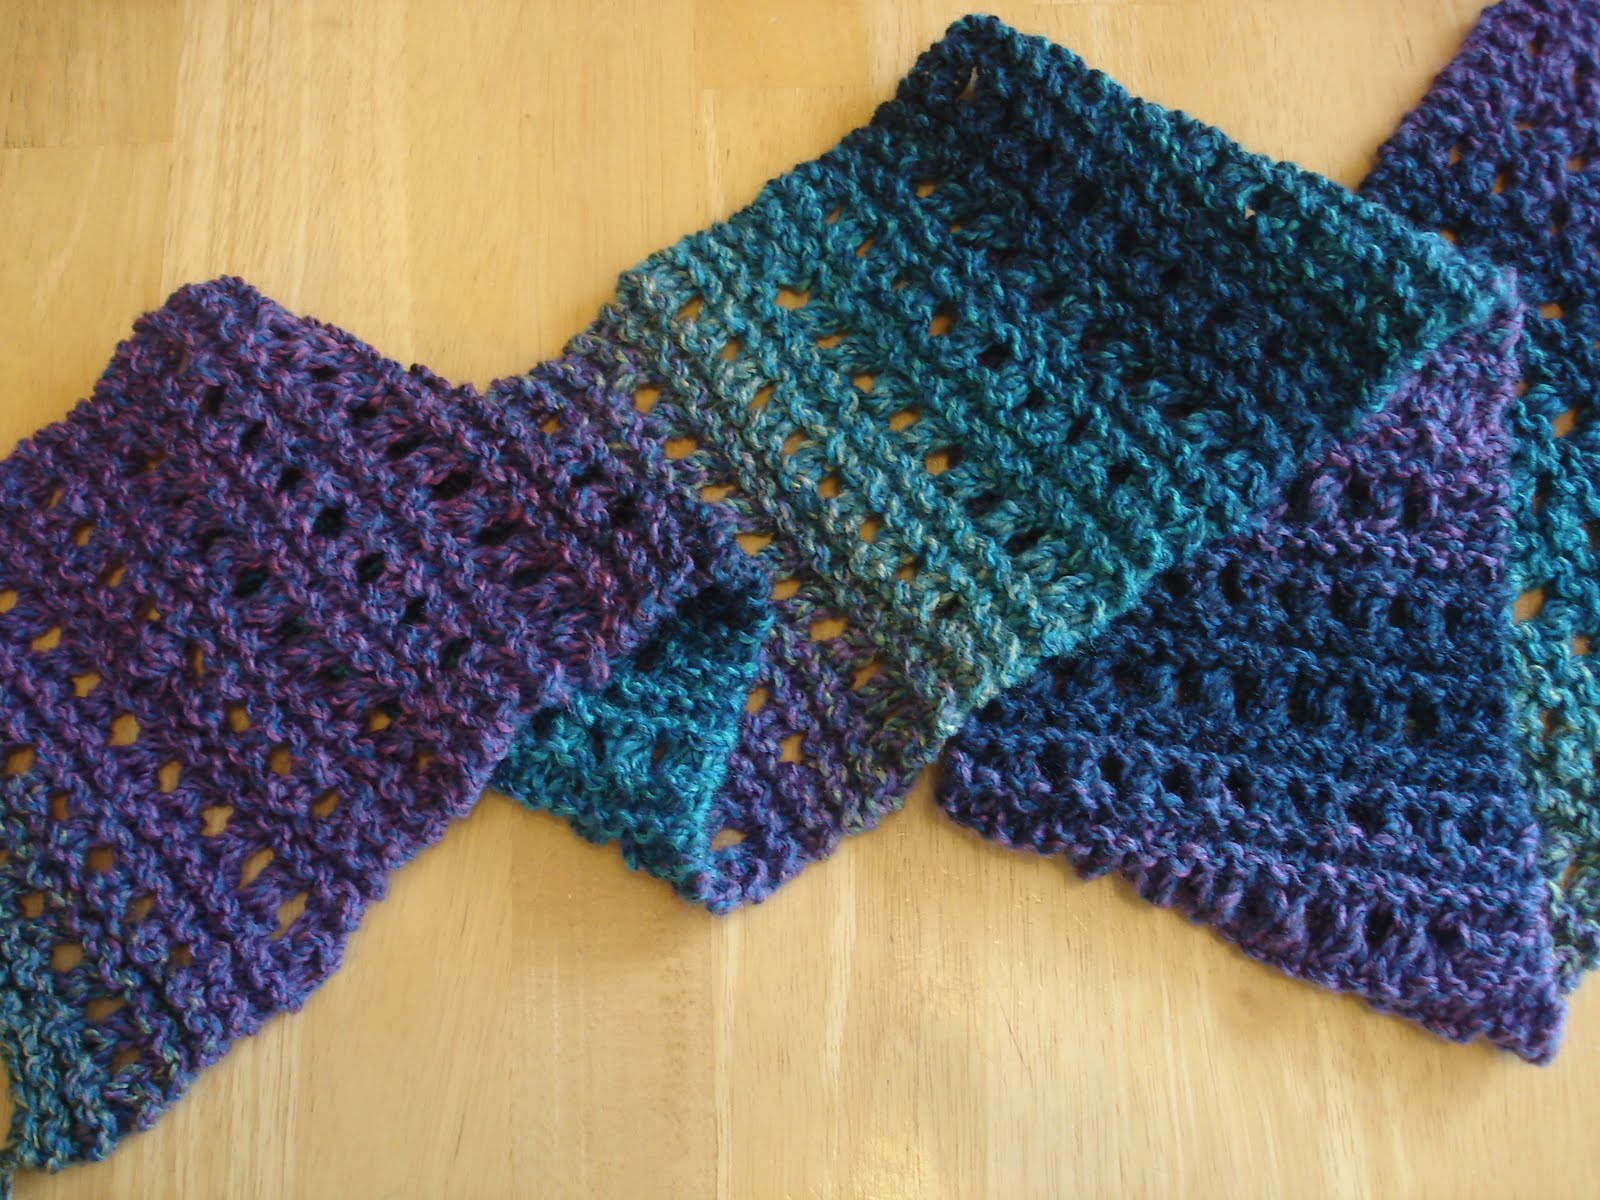 Knitting Patterns Easy Scarf Cool Easy Scarf Knitting Patterns Instructions Free Knitting Pattern